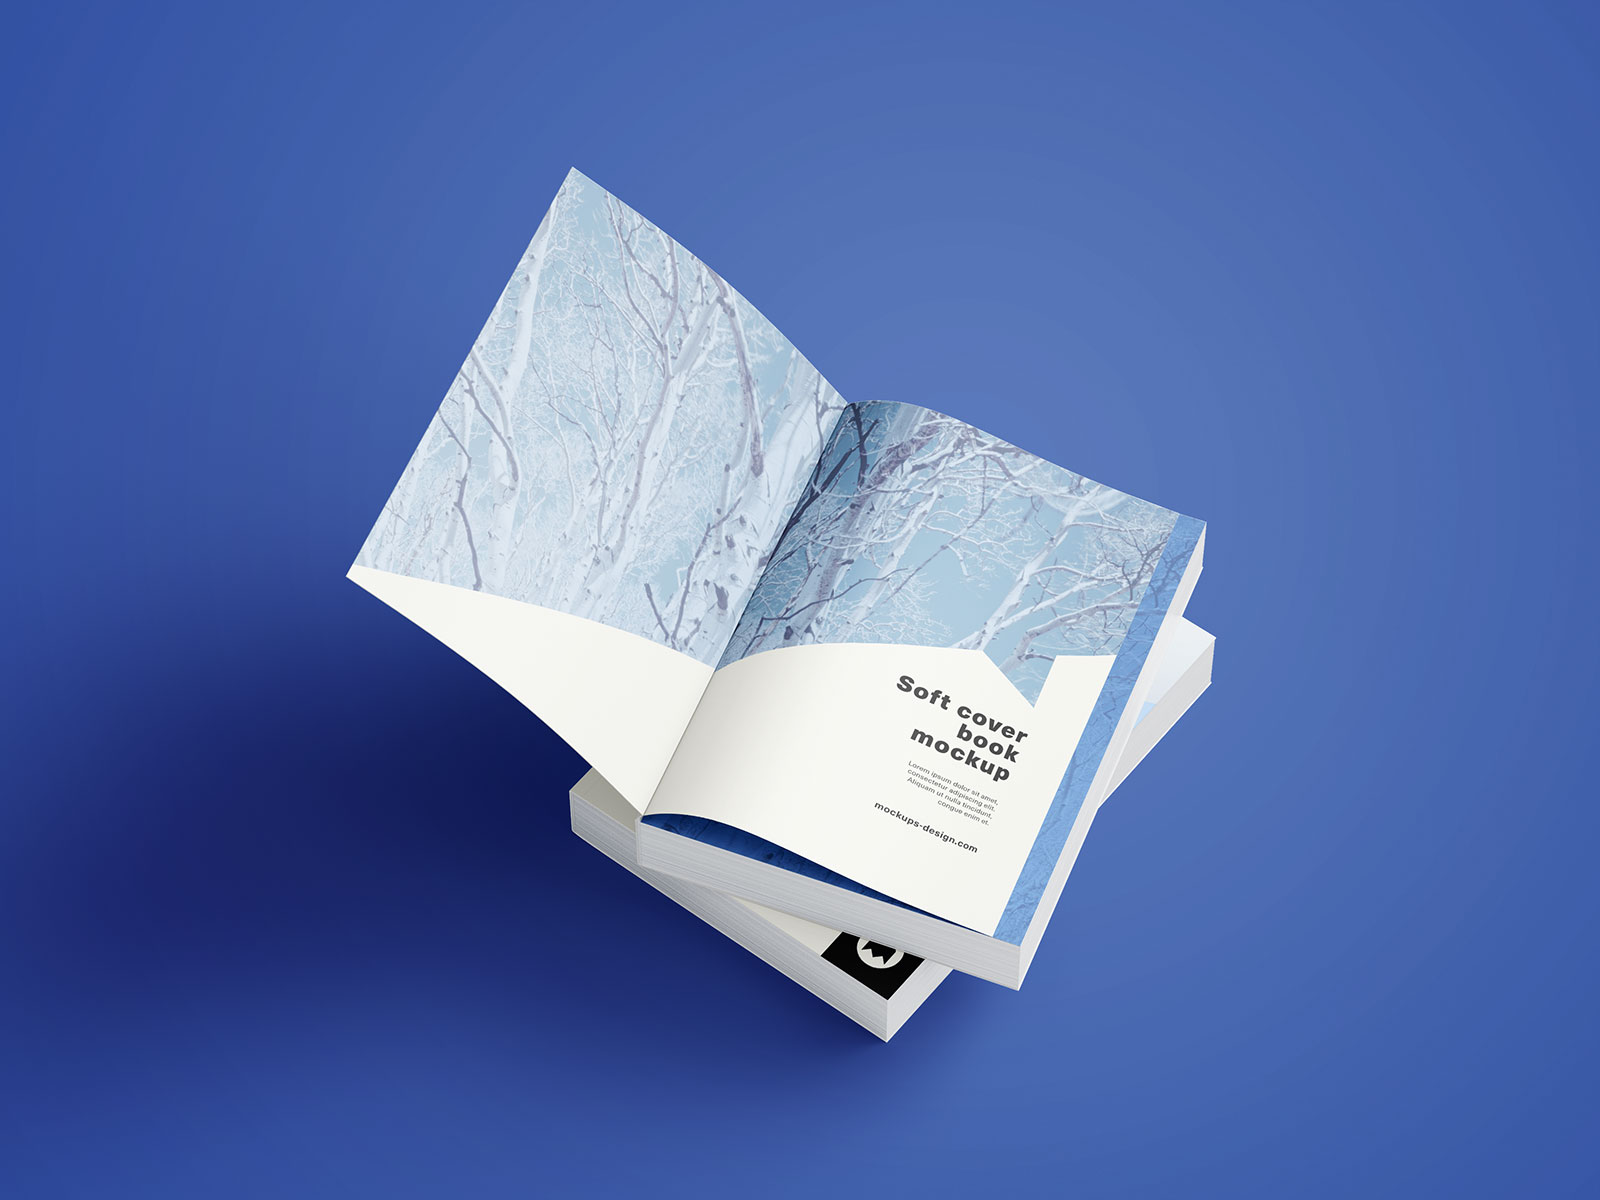 Softcover Book Mockup PSD (3)